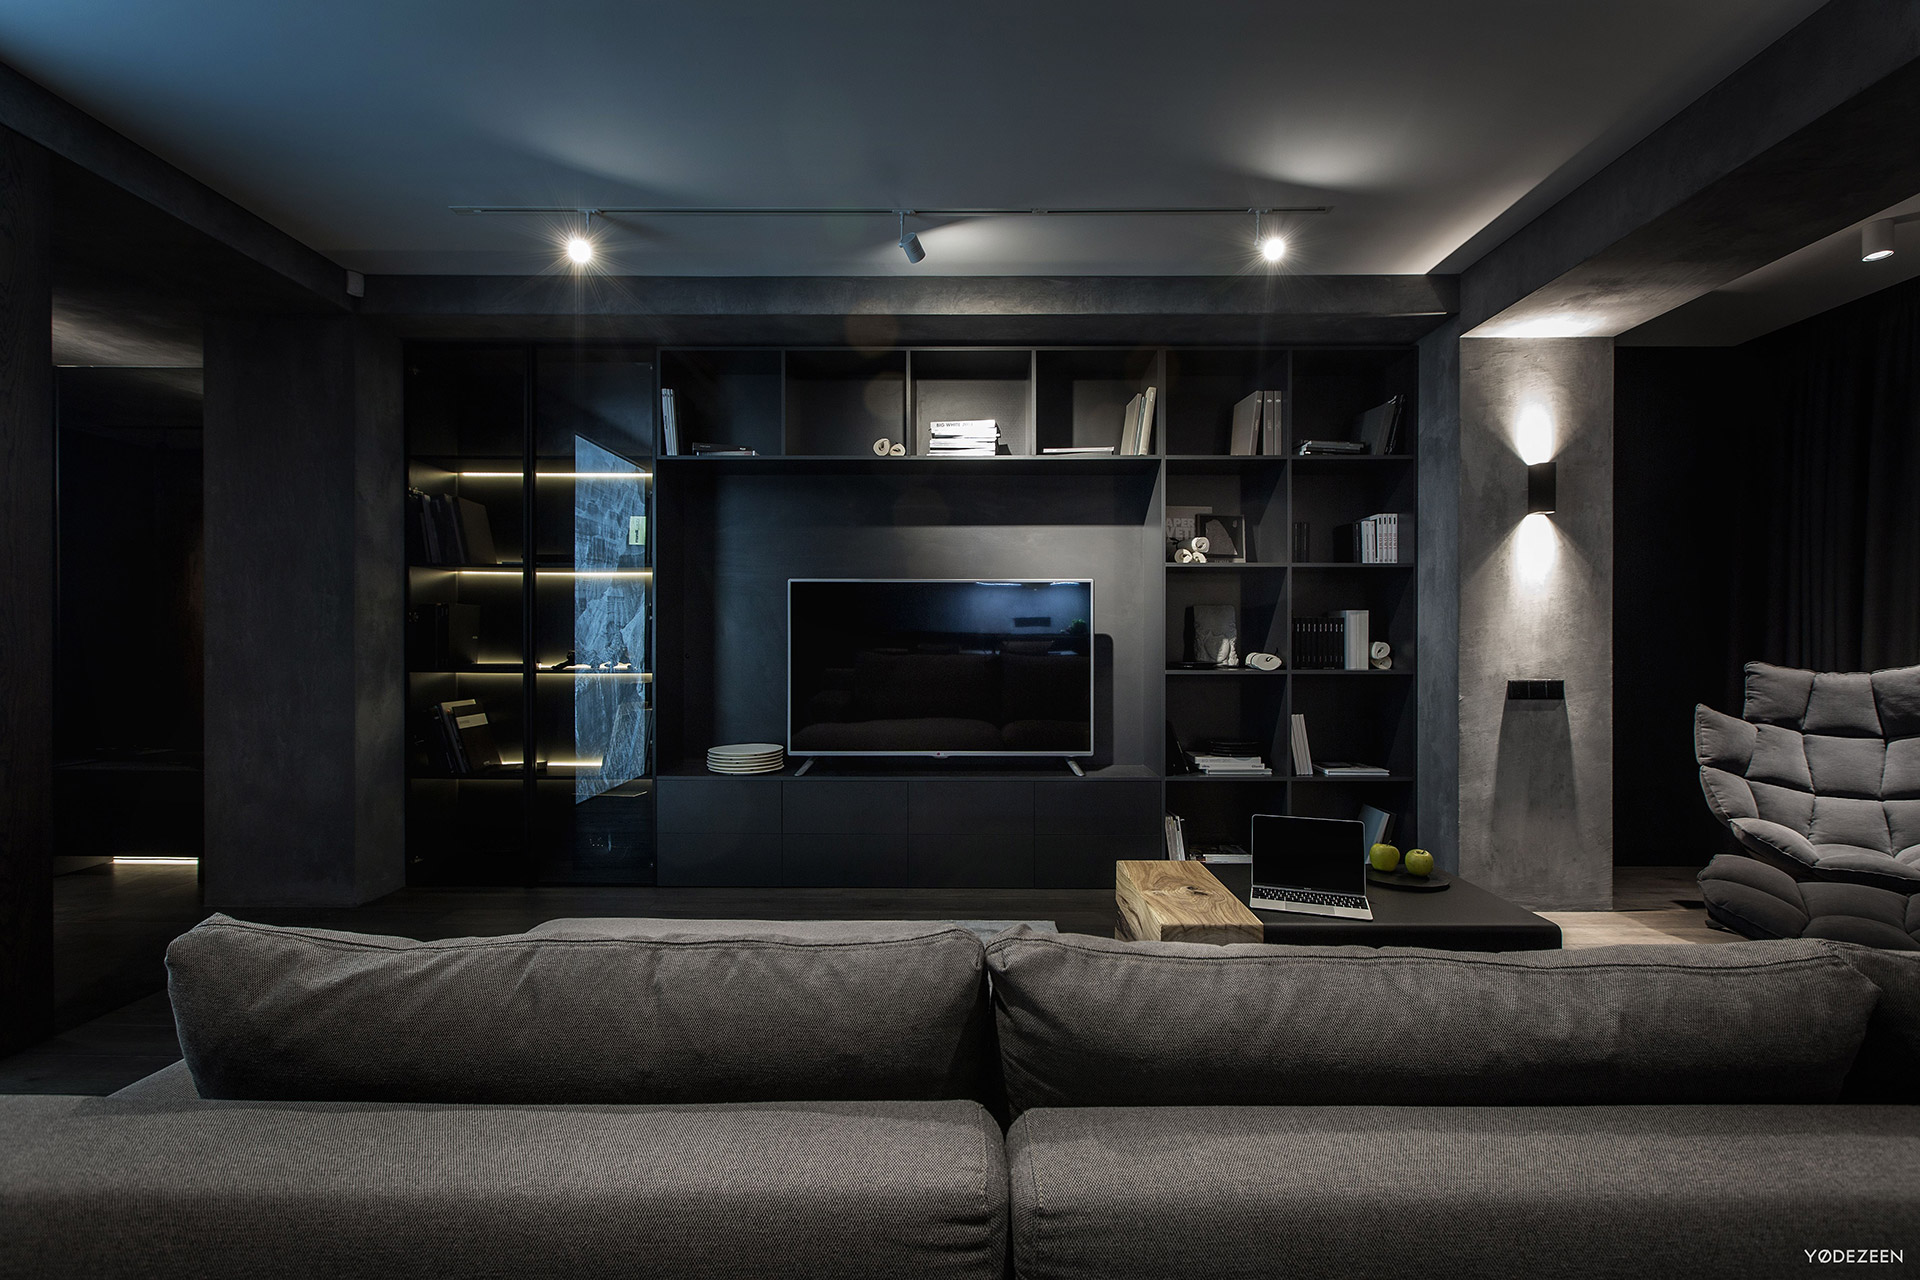 Exquisite Modern Dark Interiors - Adorable Home on Interior:ybeqvfpgwcq= Modern House  id=20716